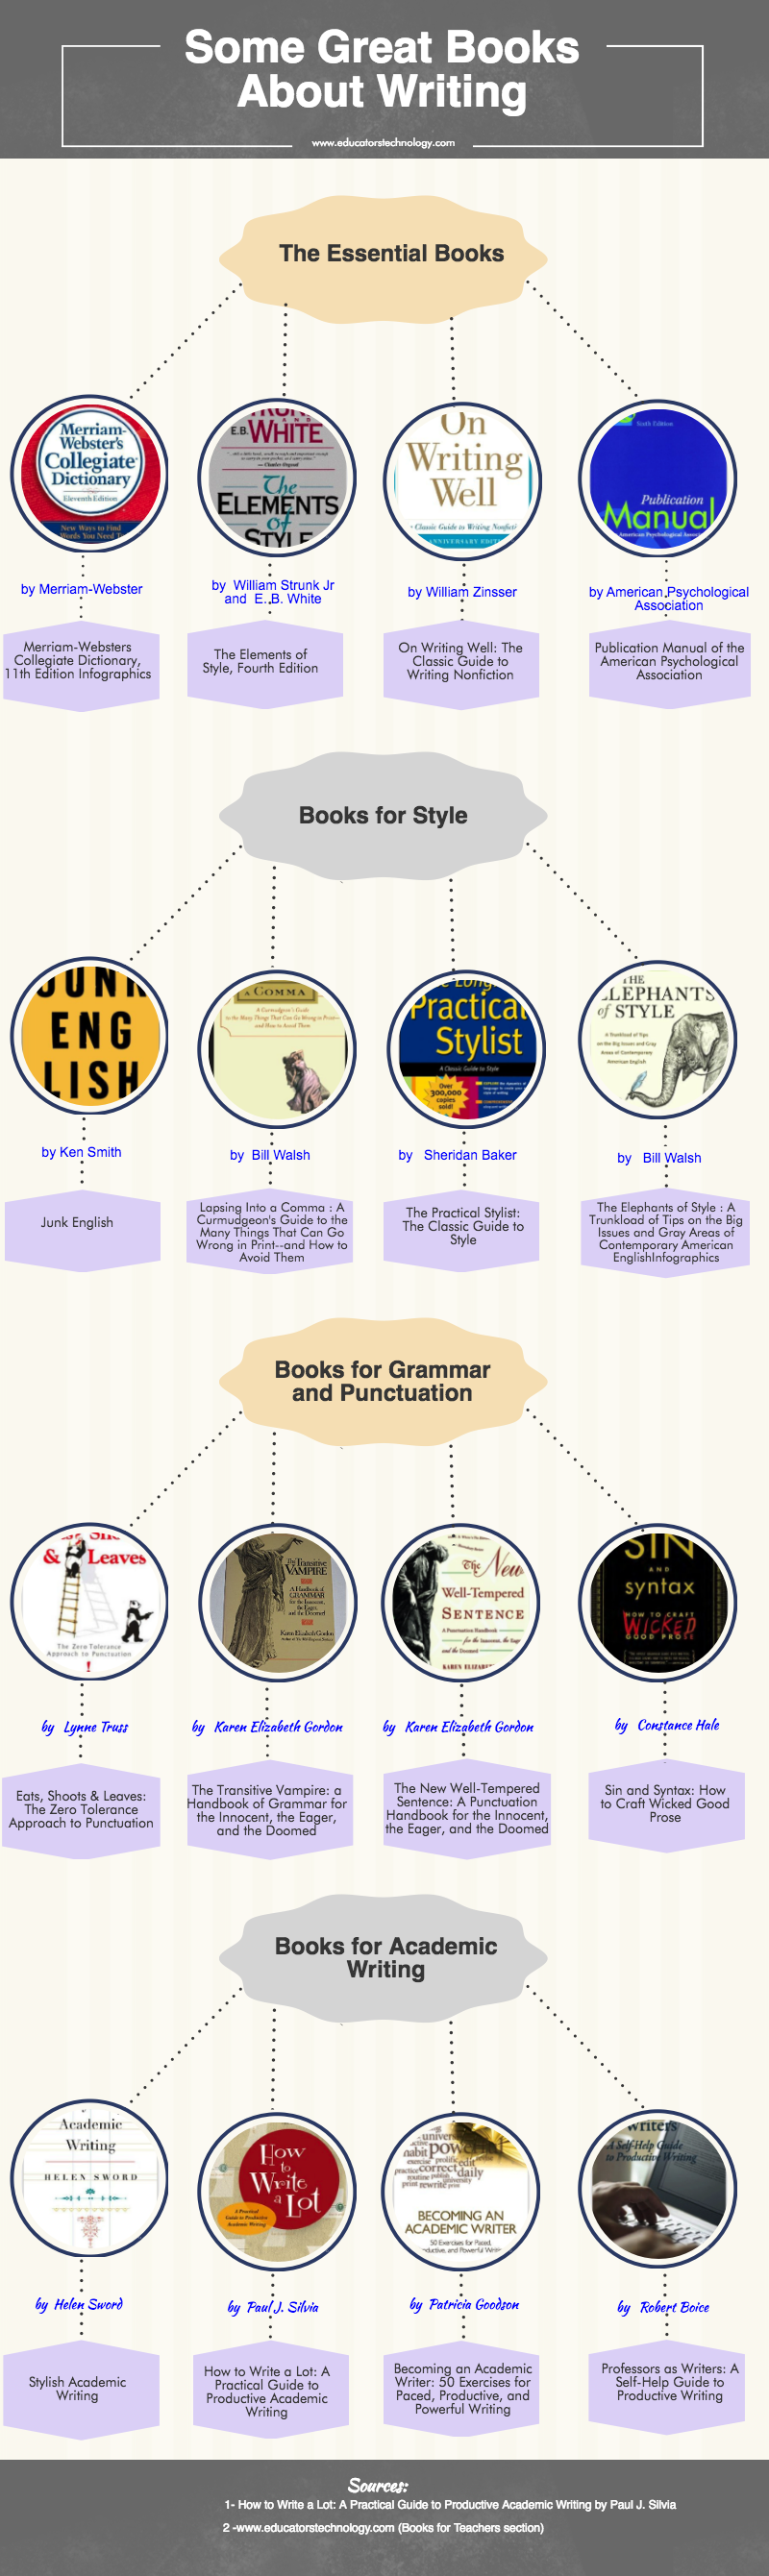 An Interesting Guide Featuring 16 Great Writing Guides for Teachers and Students